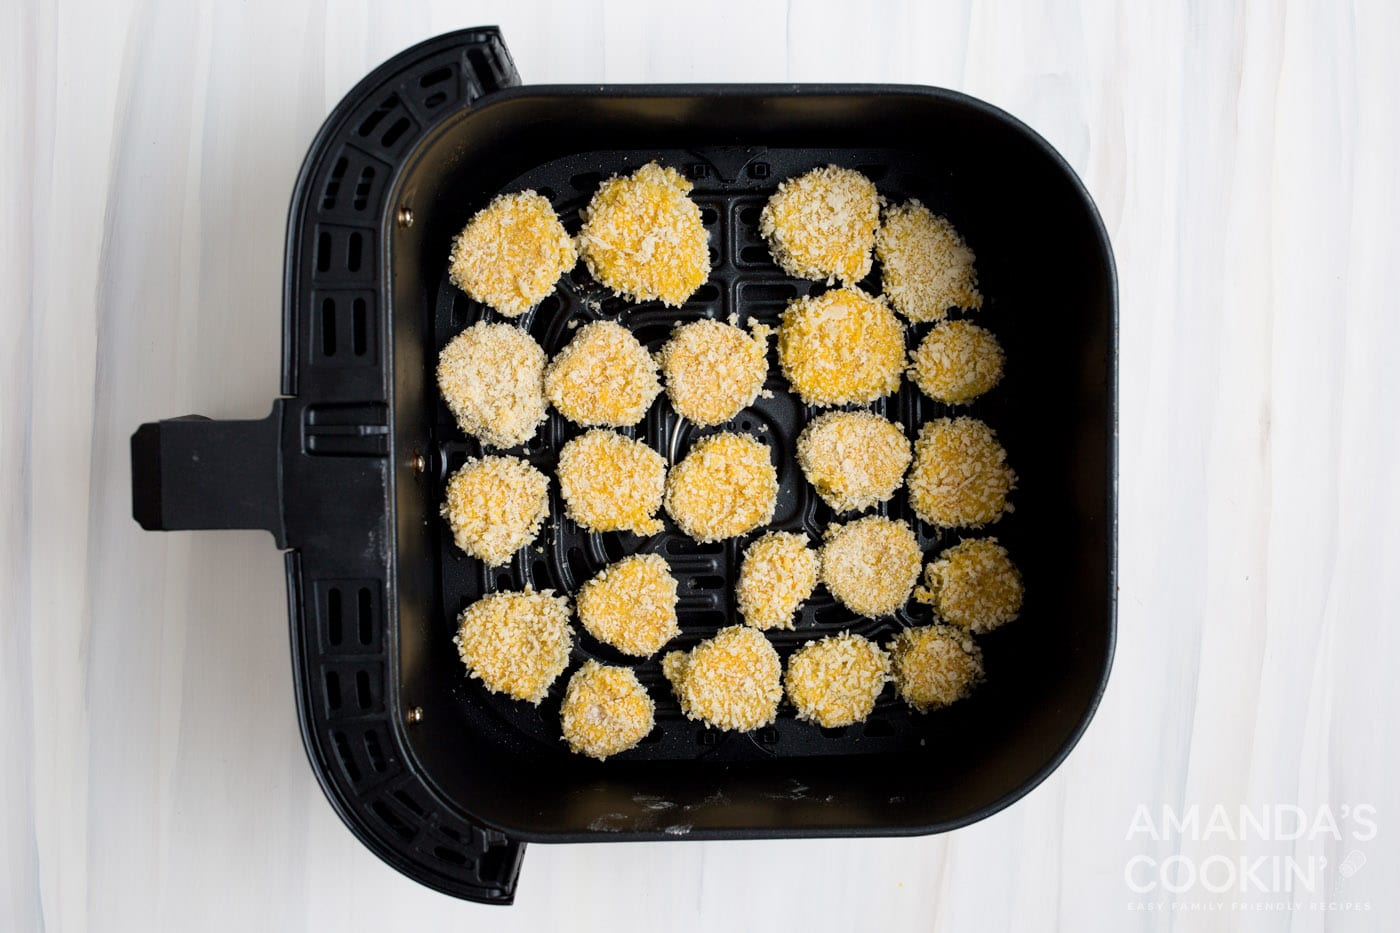 panko coated pickle chips in an air fryer basket